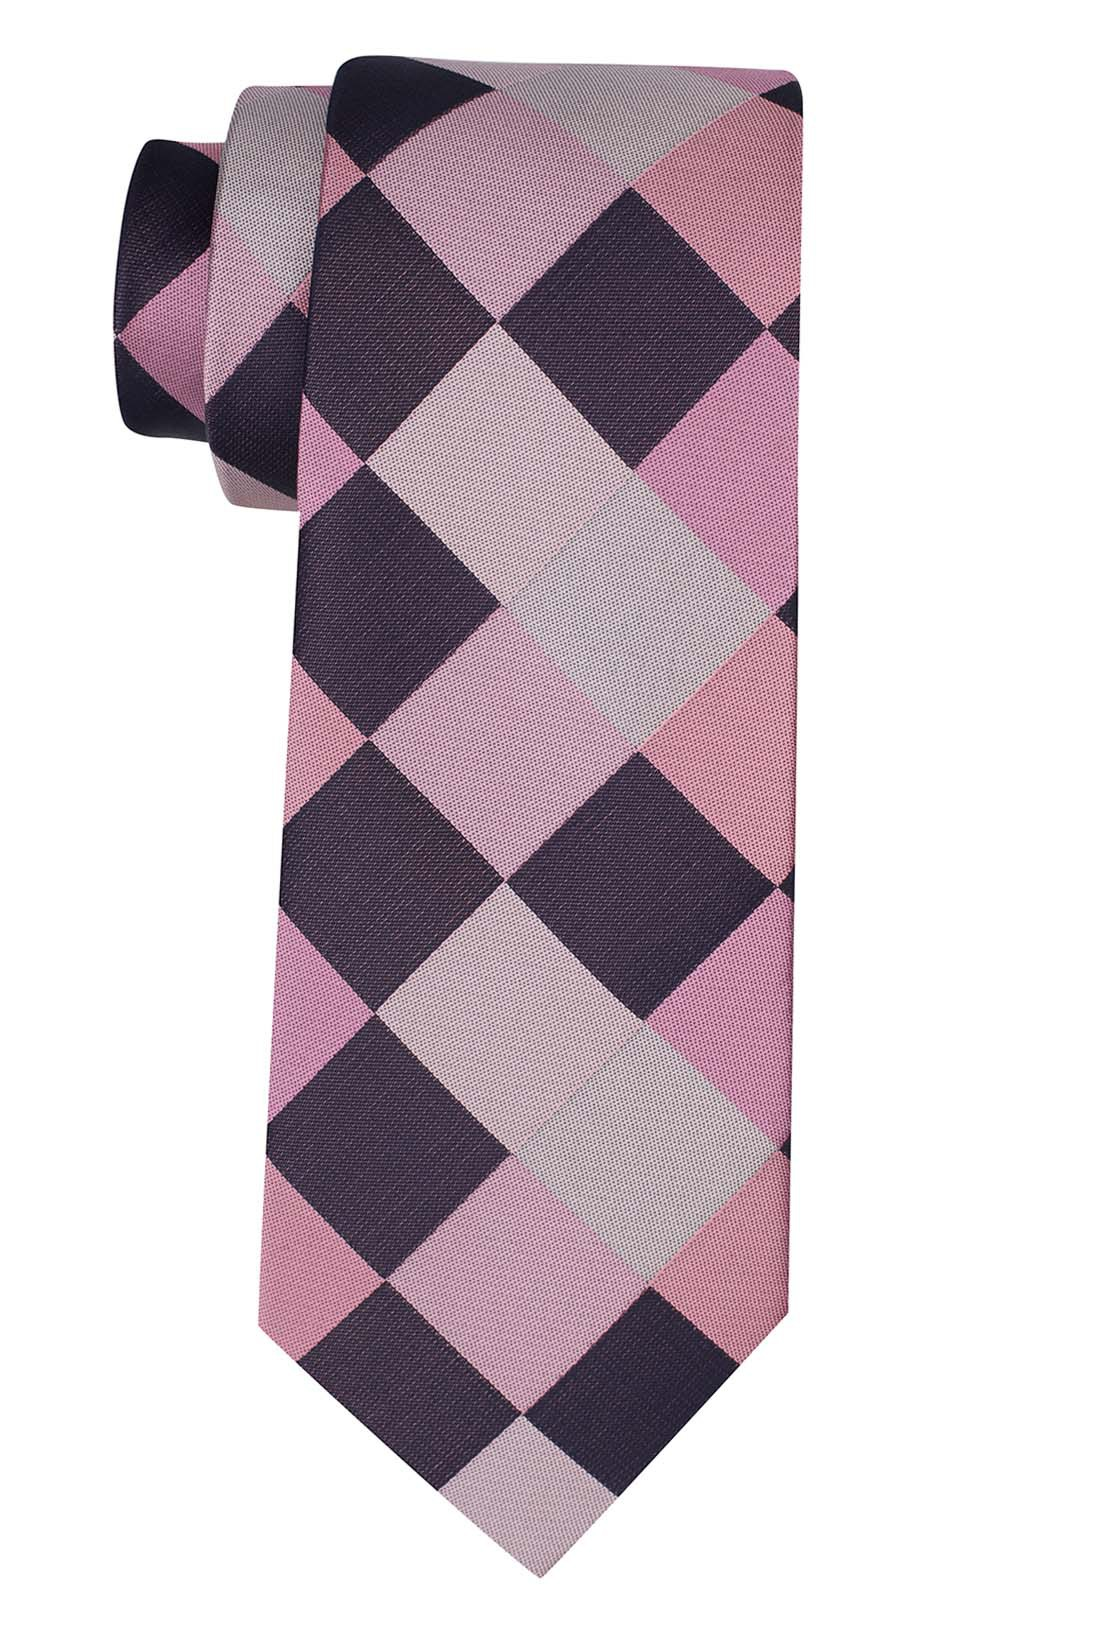 Asteria Checkered Pink And Purple Silk Necktie